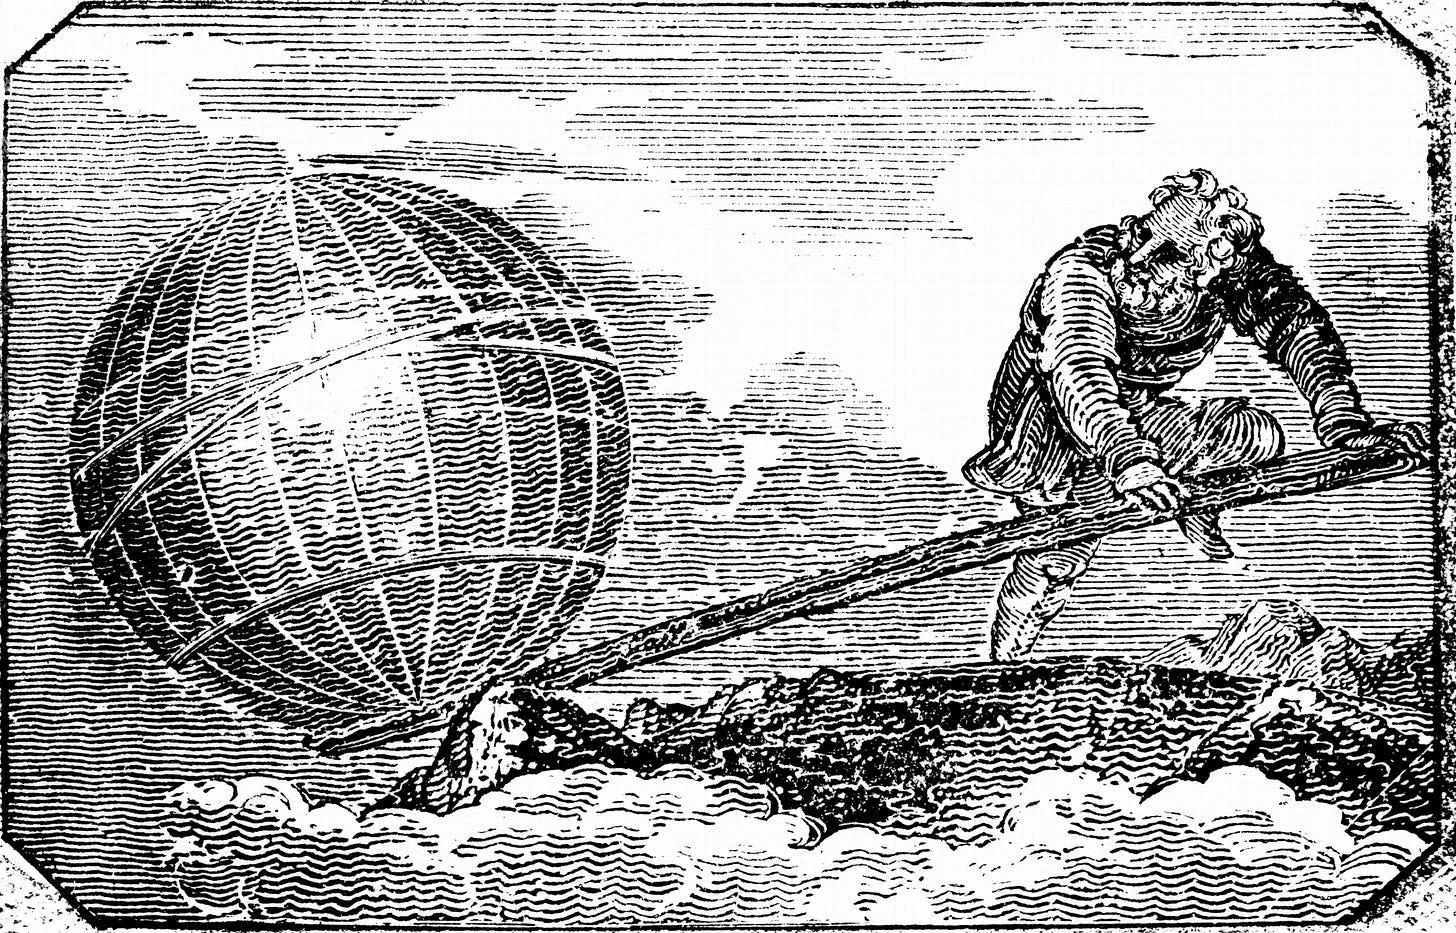 Some Leveraging Inspiration from Old Archimedes - Inequality.org